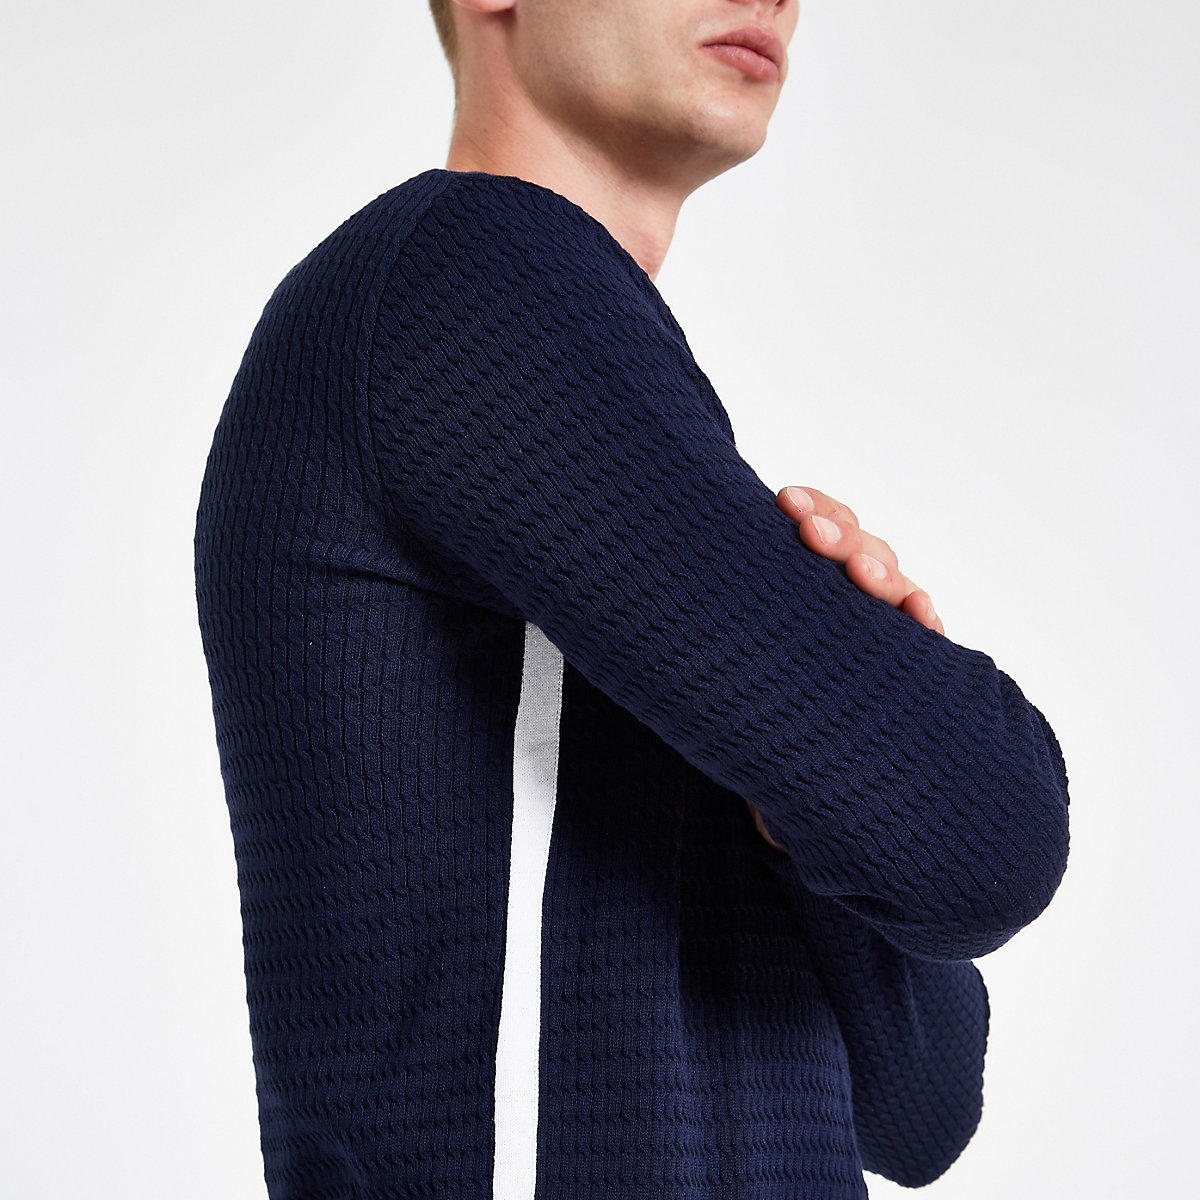 7caa3a0eb91c Navy cable knit muscle fit jumper - Jumpers - Jumpers   Cardigans - men